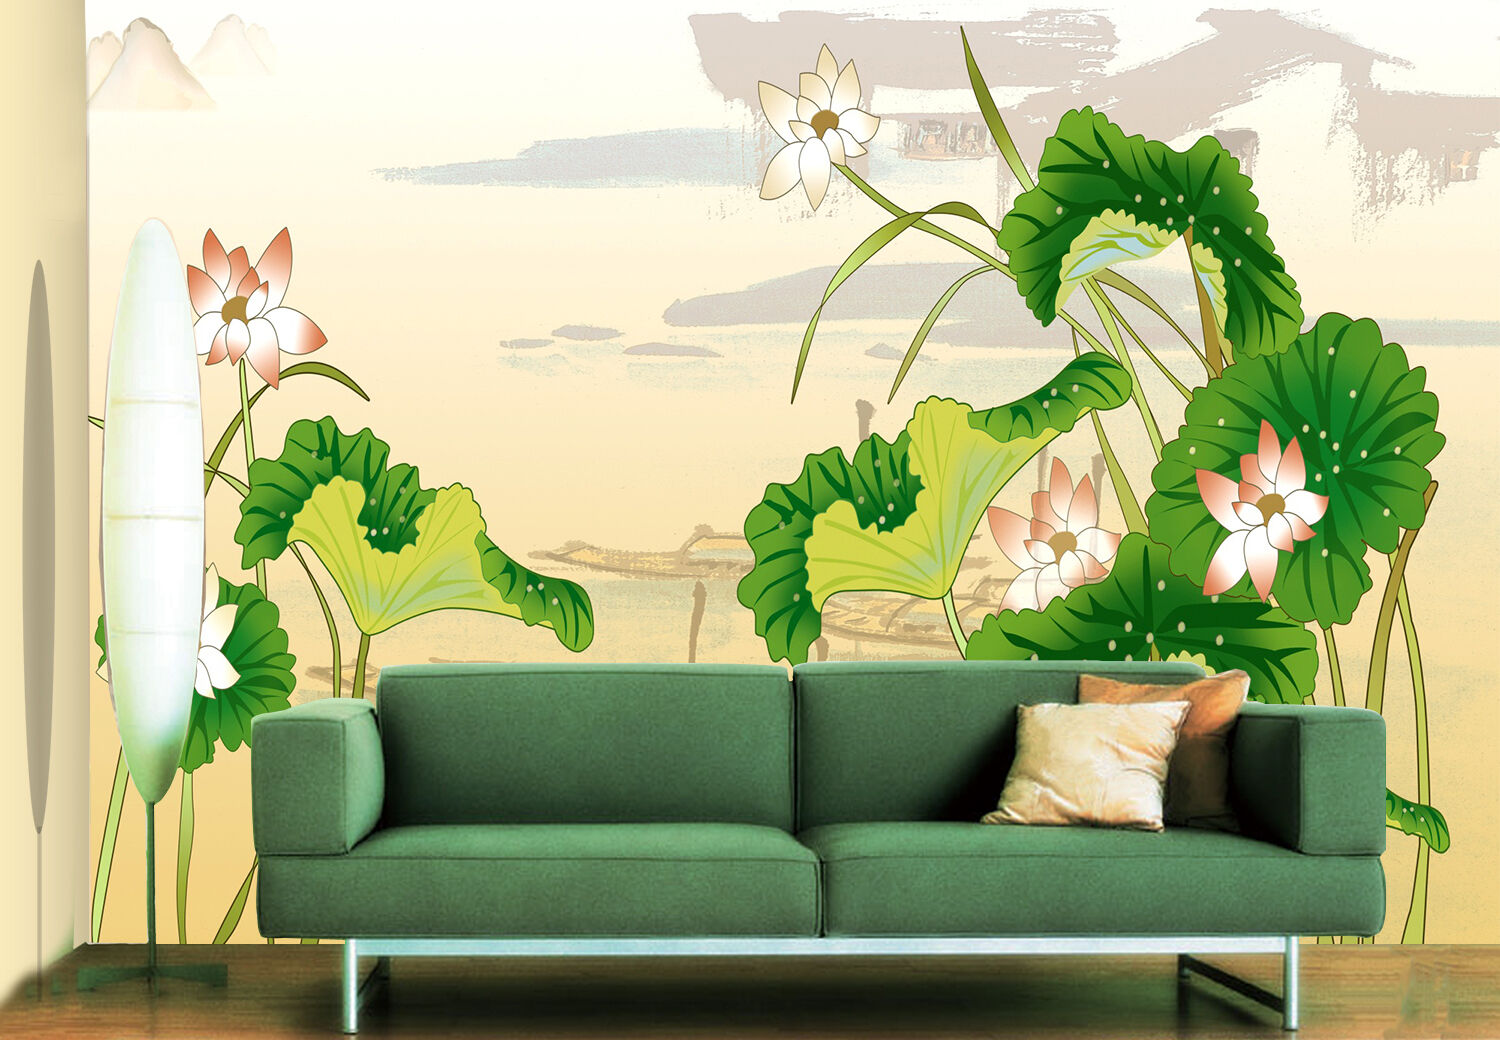 3D Green lotus leaves Wall Paper Wall Print Decal Wall Deco Indoor wall Murals